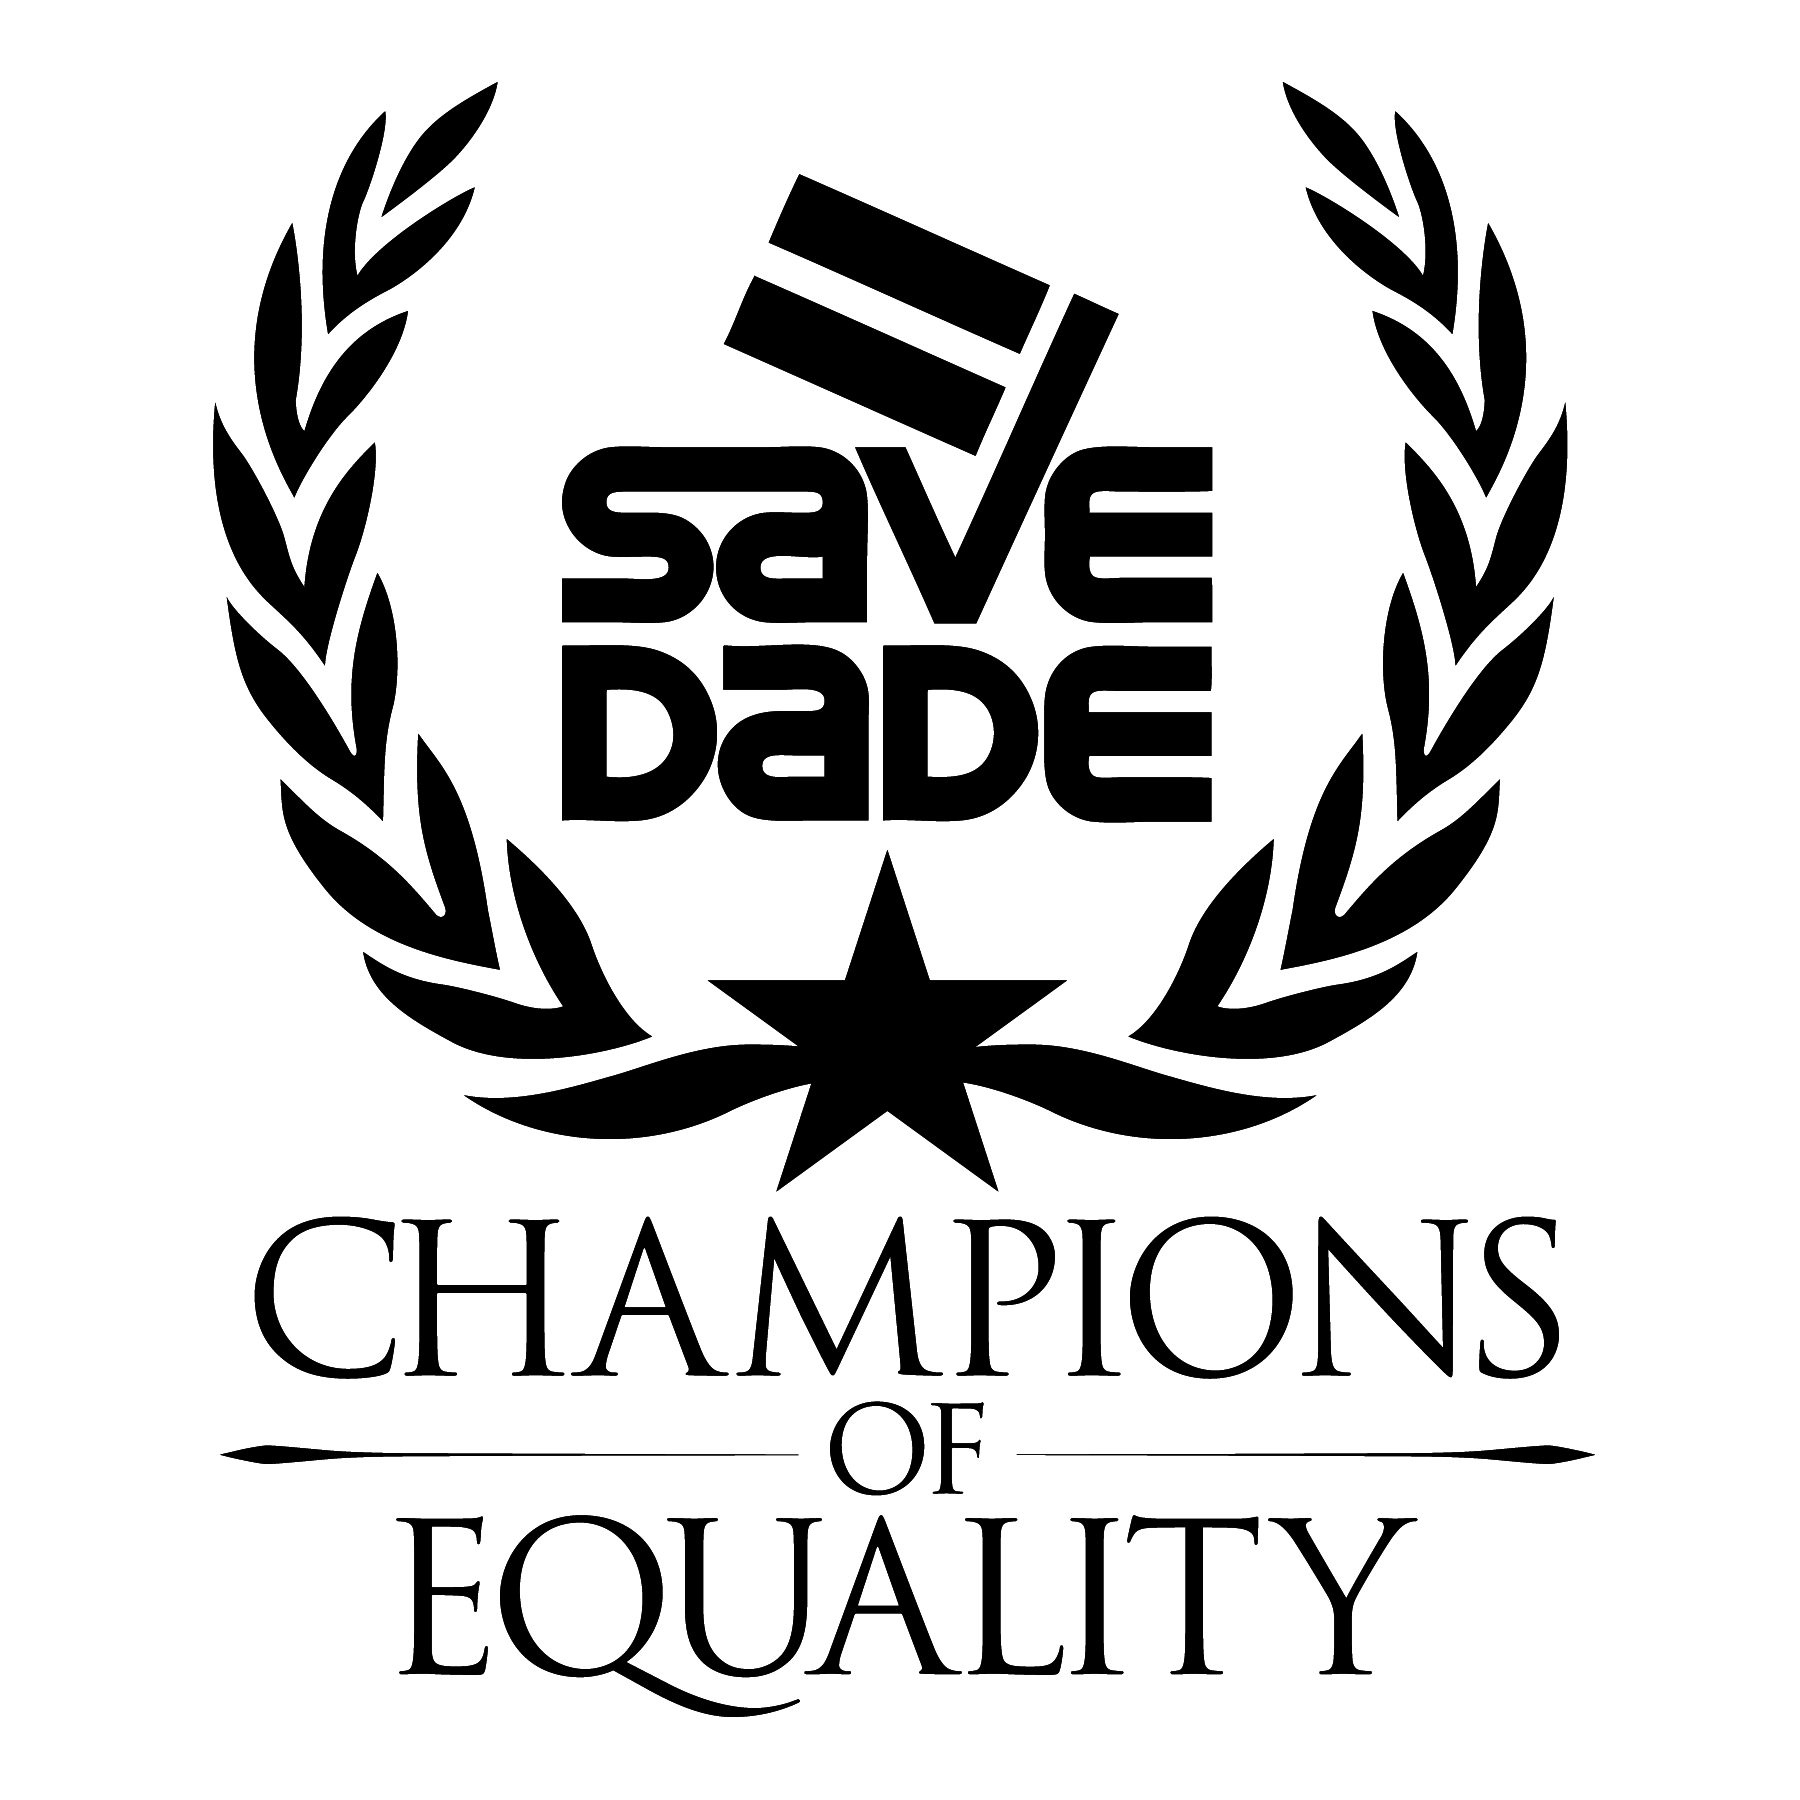 champions_of_equality_logo-01.png